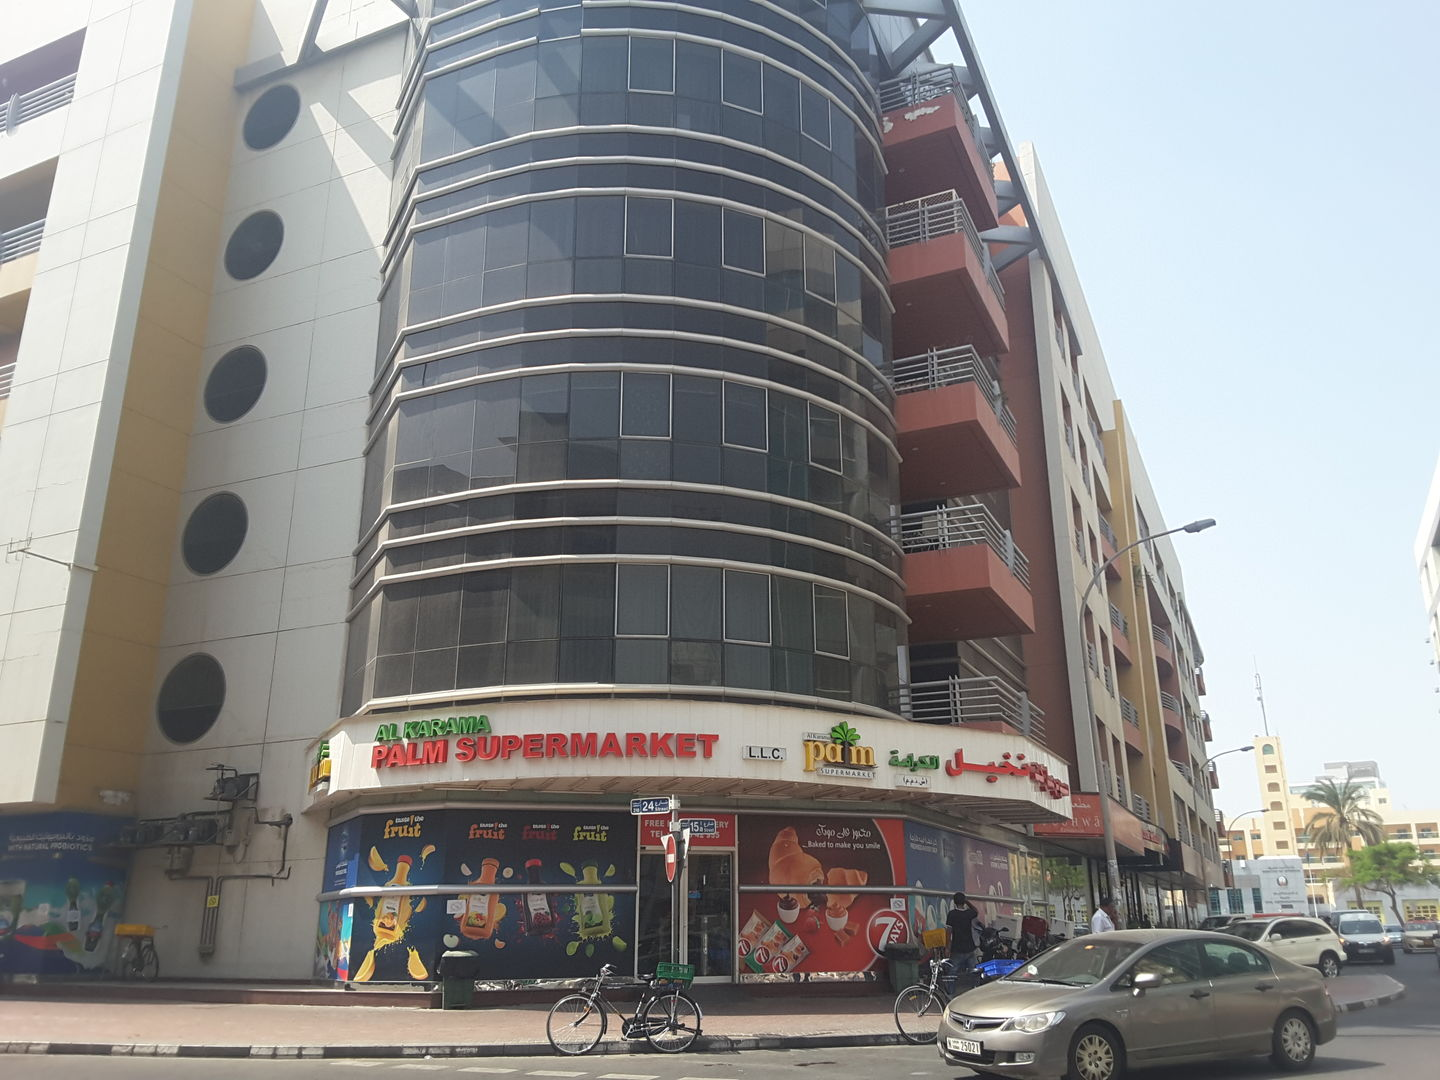 HiDubai-business-al-karama-palm-supermarket-food-beverage-supermarkets-hypermarkets-grocery-stores-al-karama-dubai-2